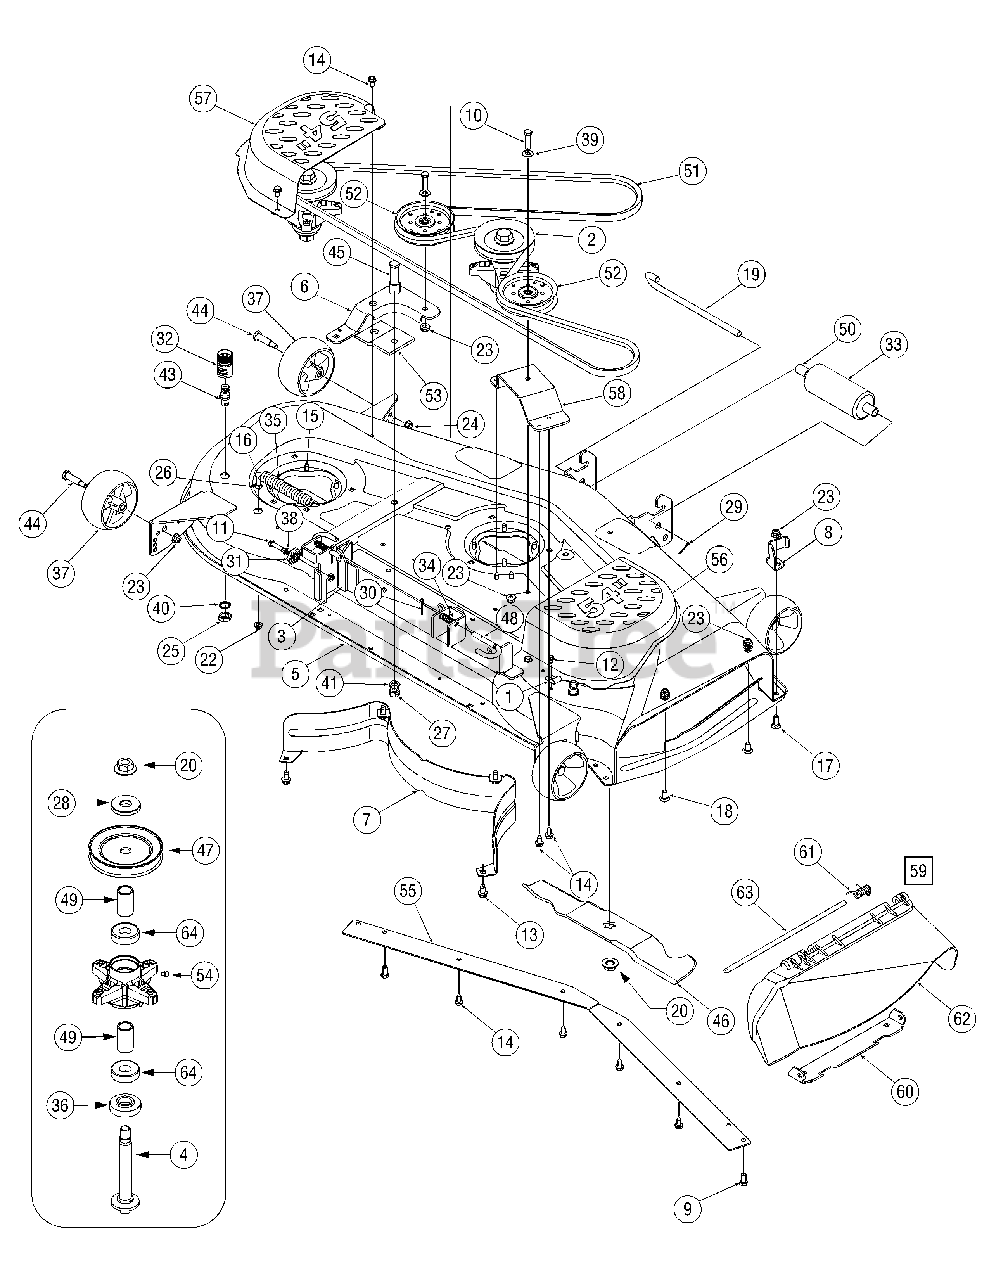 Cub Cadet Parts on the Mower Deck 54 inch Diagram for SLT